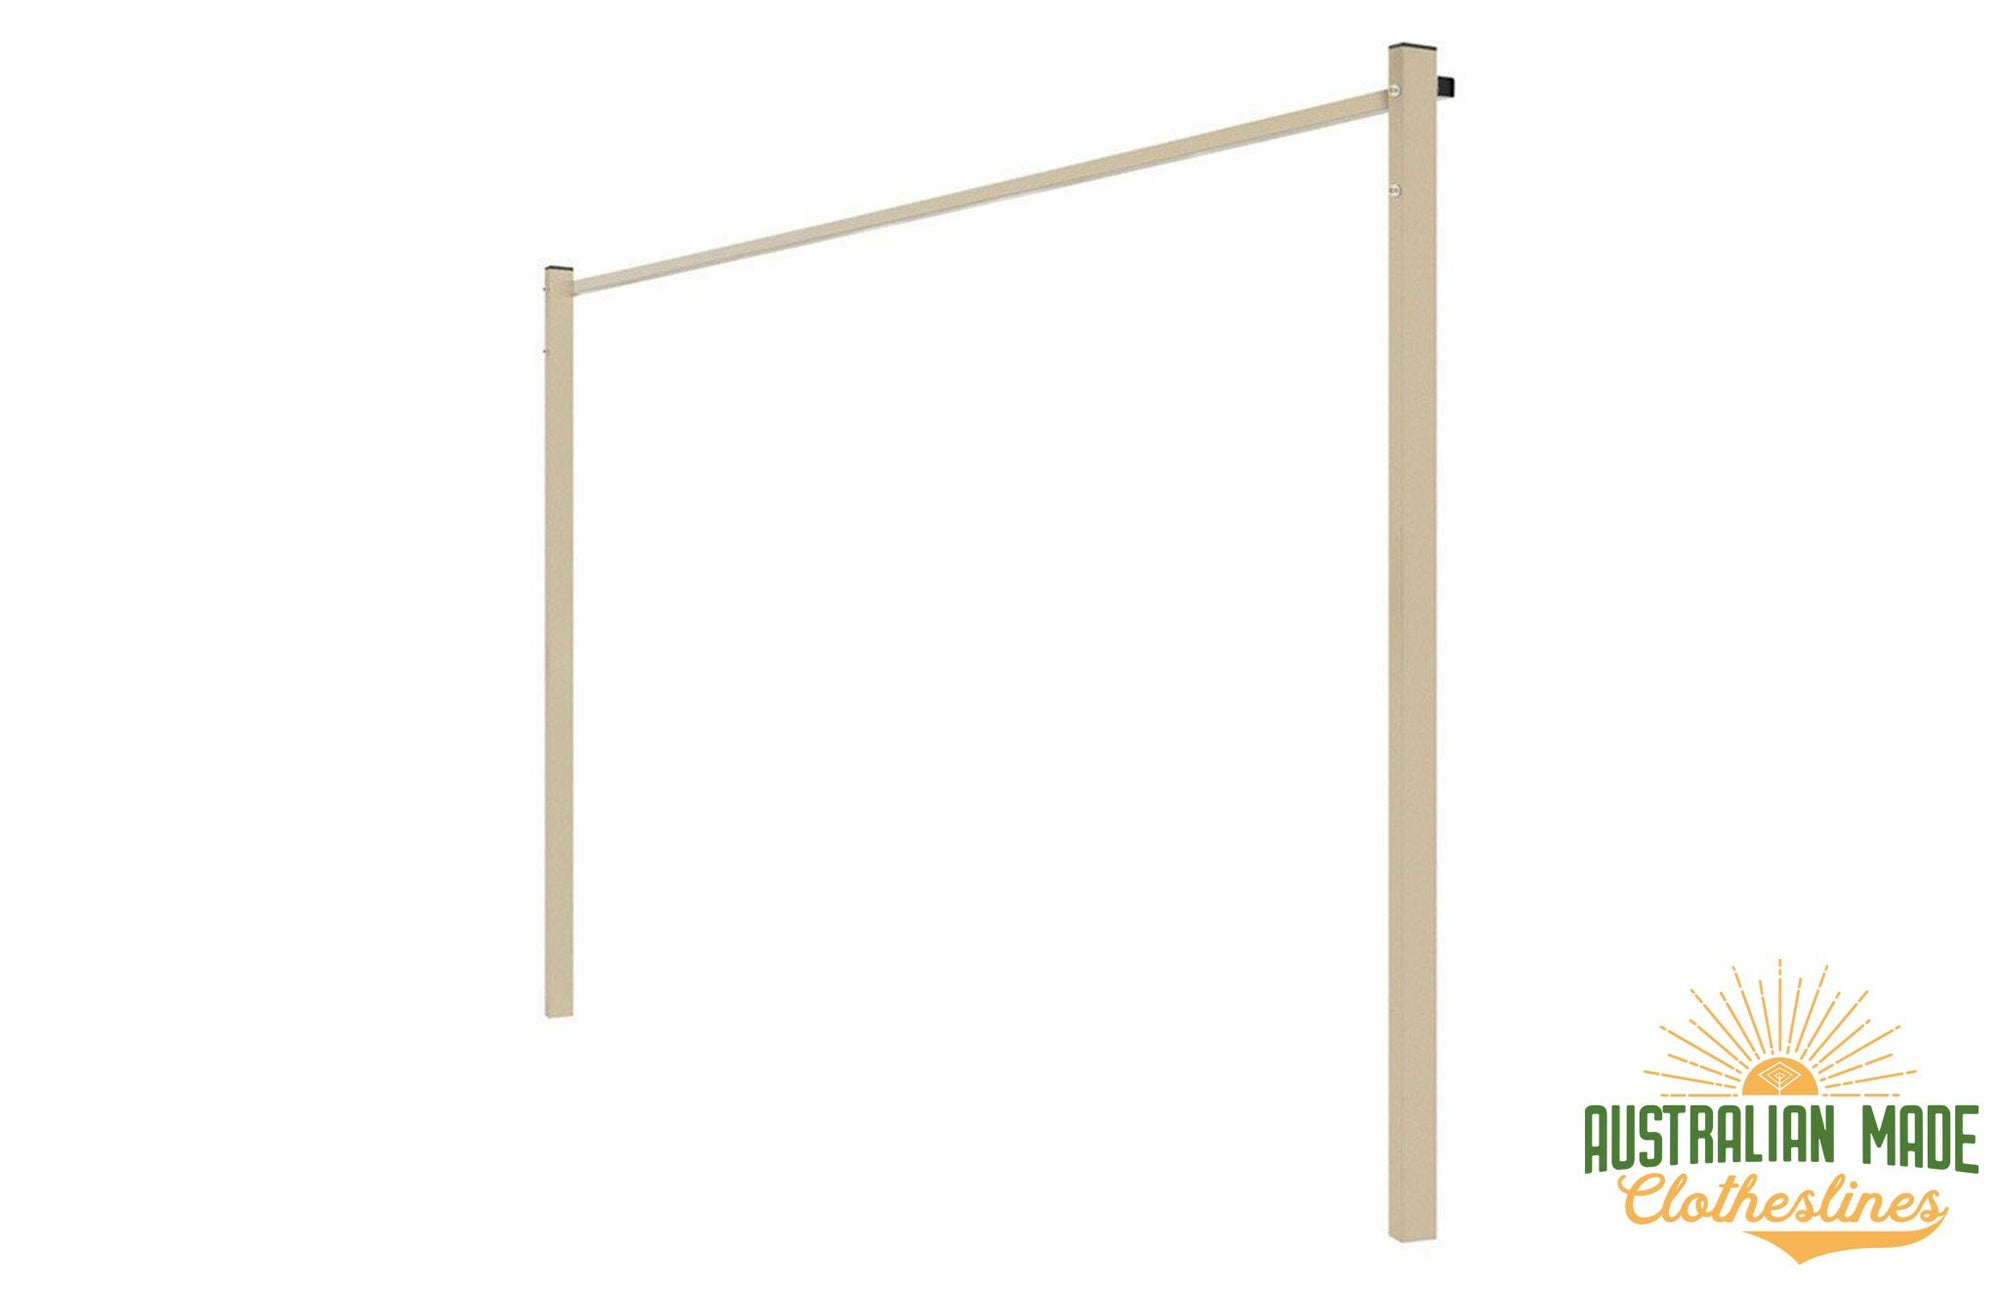 Austral Unit Line 15 Ground Mount Kit - Classic Cream - Australian Made Clotheslines